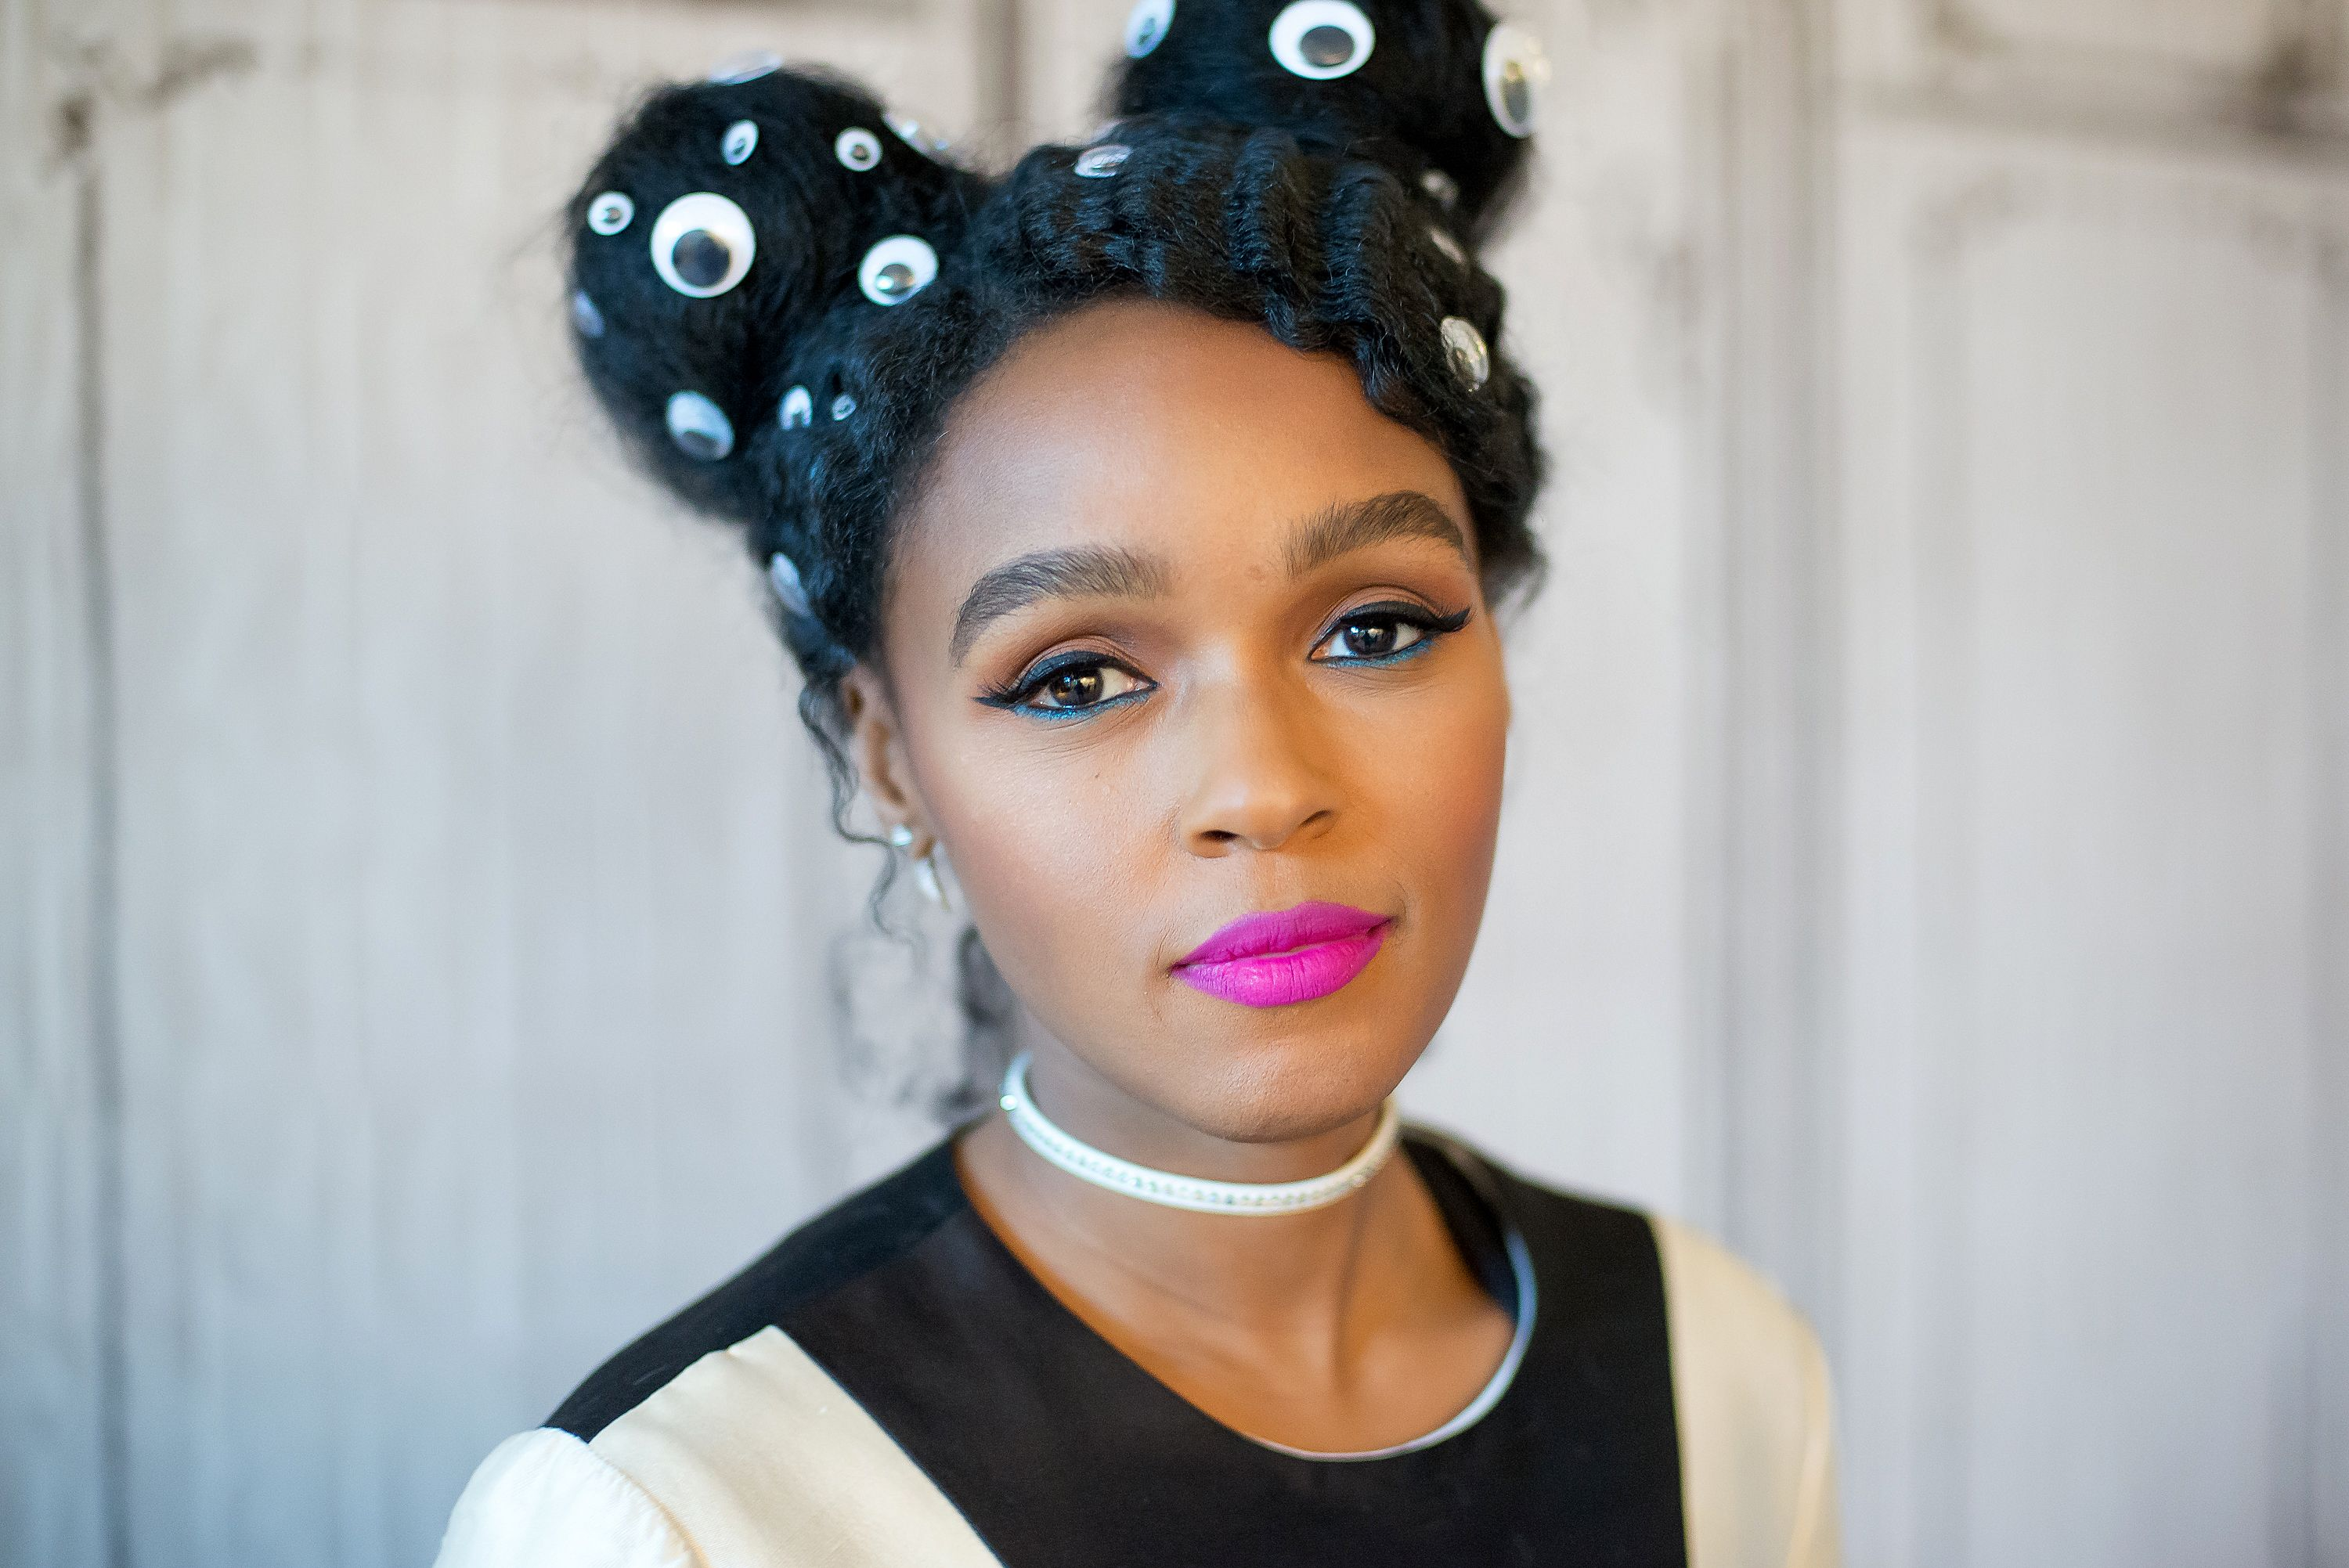 Janelle Monae nudes (31 photos), Ass, Leaked, Boobs, panties 2019